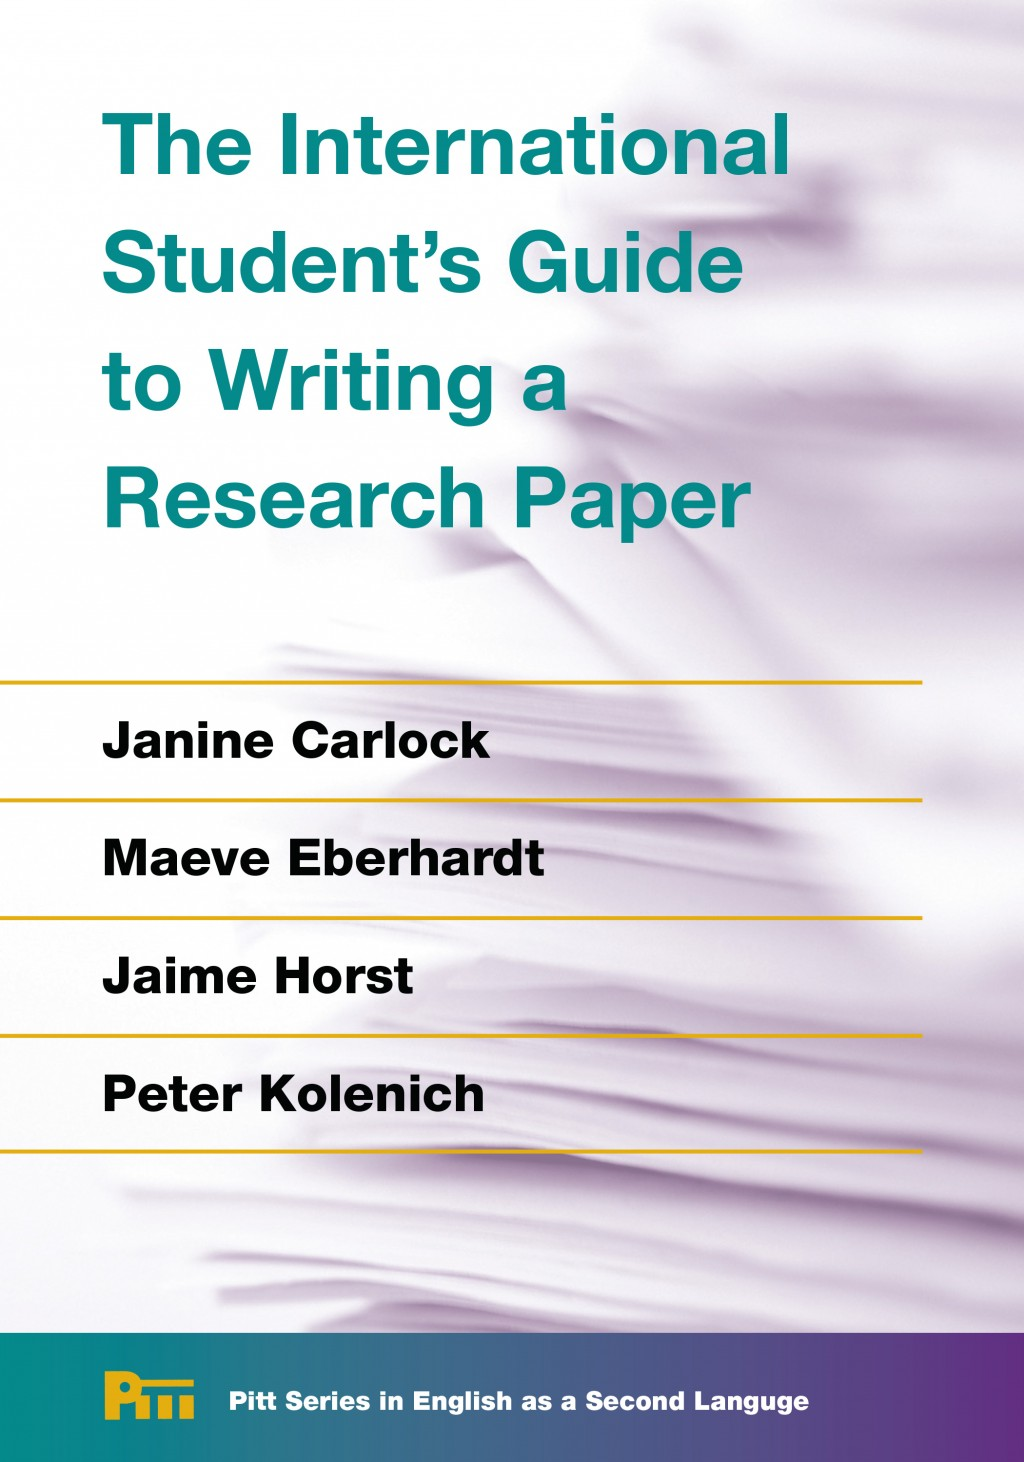 013 Writing The Research Paper Phenomenal How To Write A Outline Mla Papers Complete Guide 16th Edition Pdf Free Large